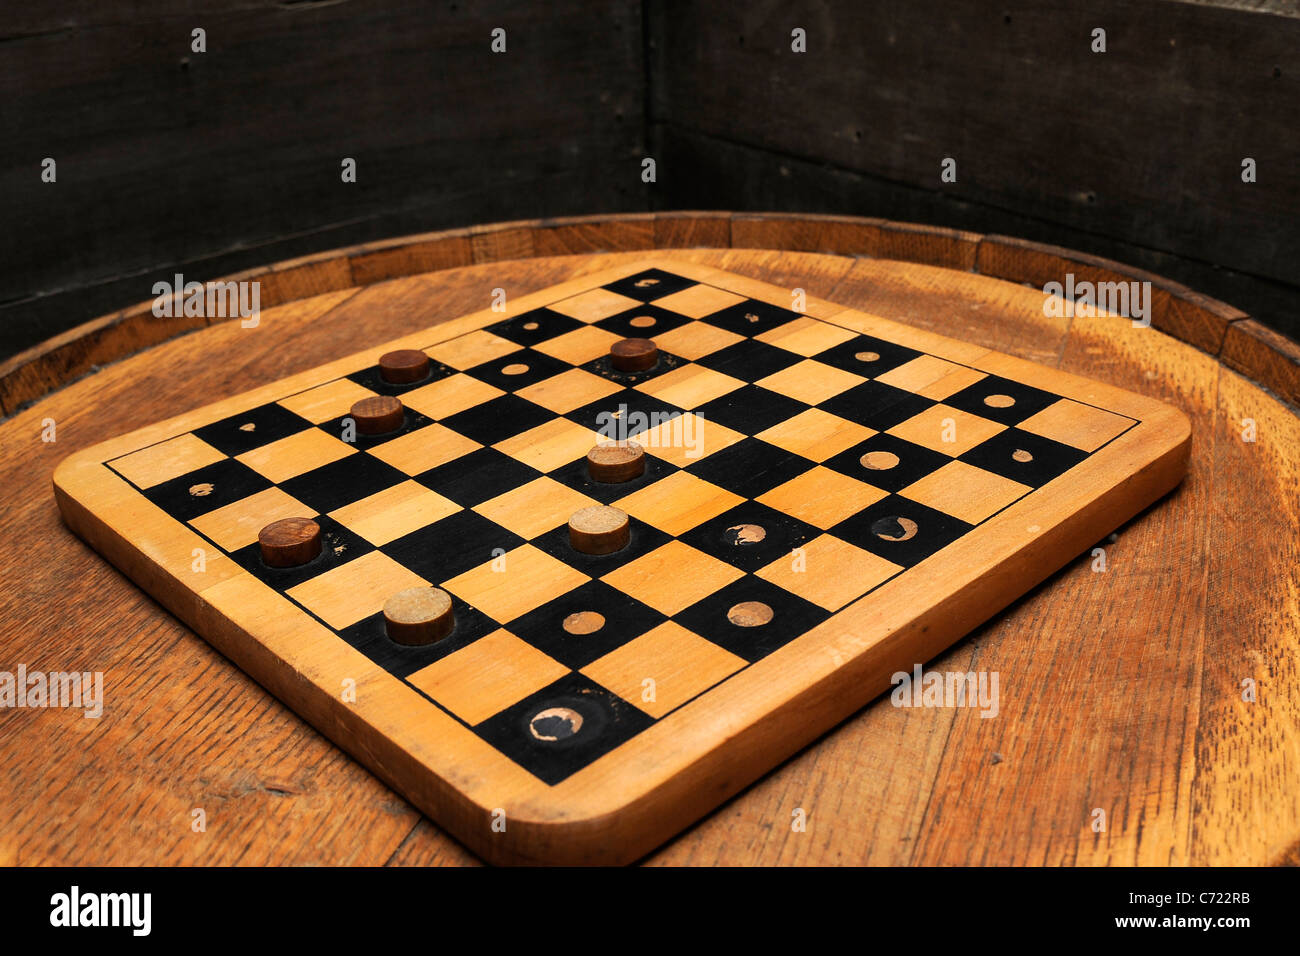 Vintage Draughts / Checkers Board - Stock Image